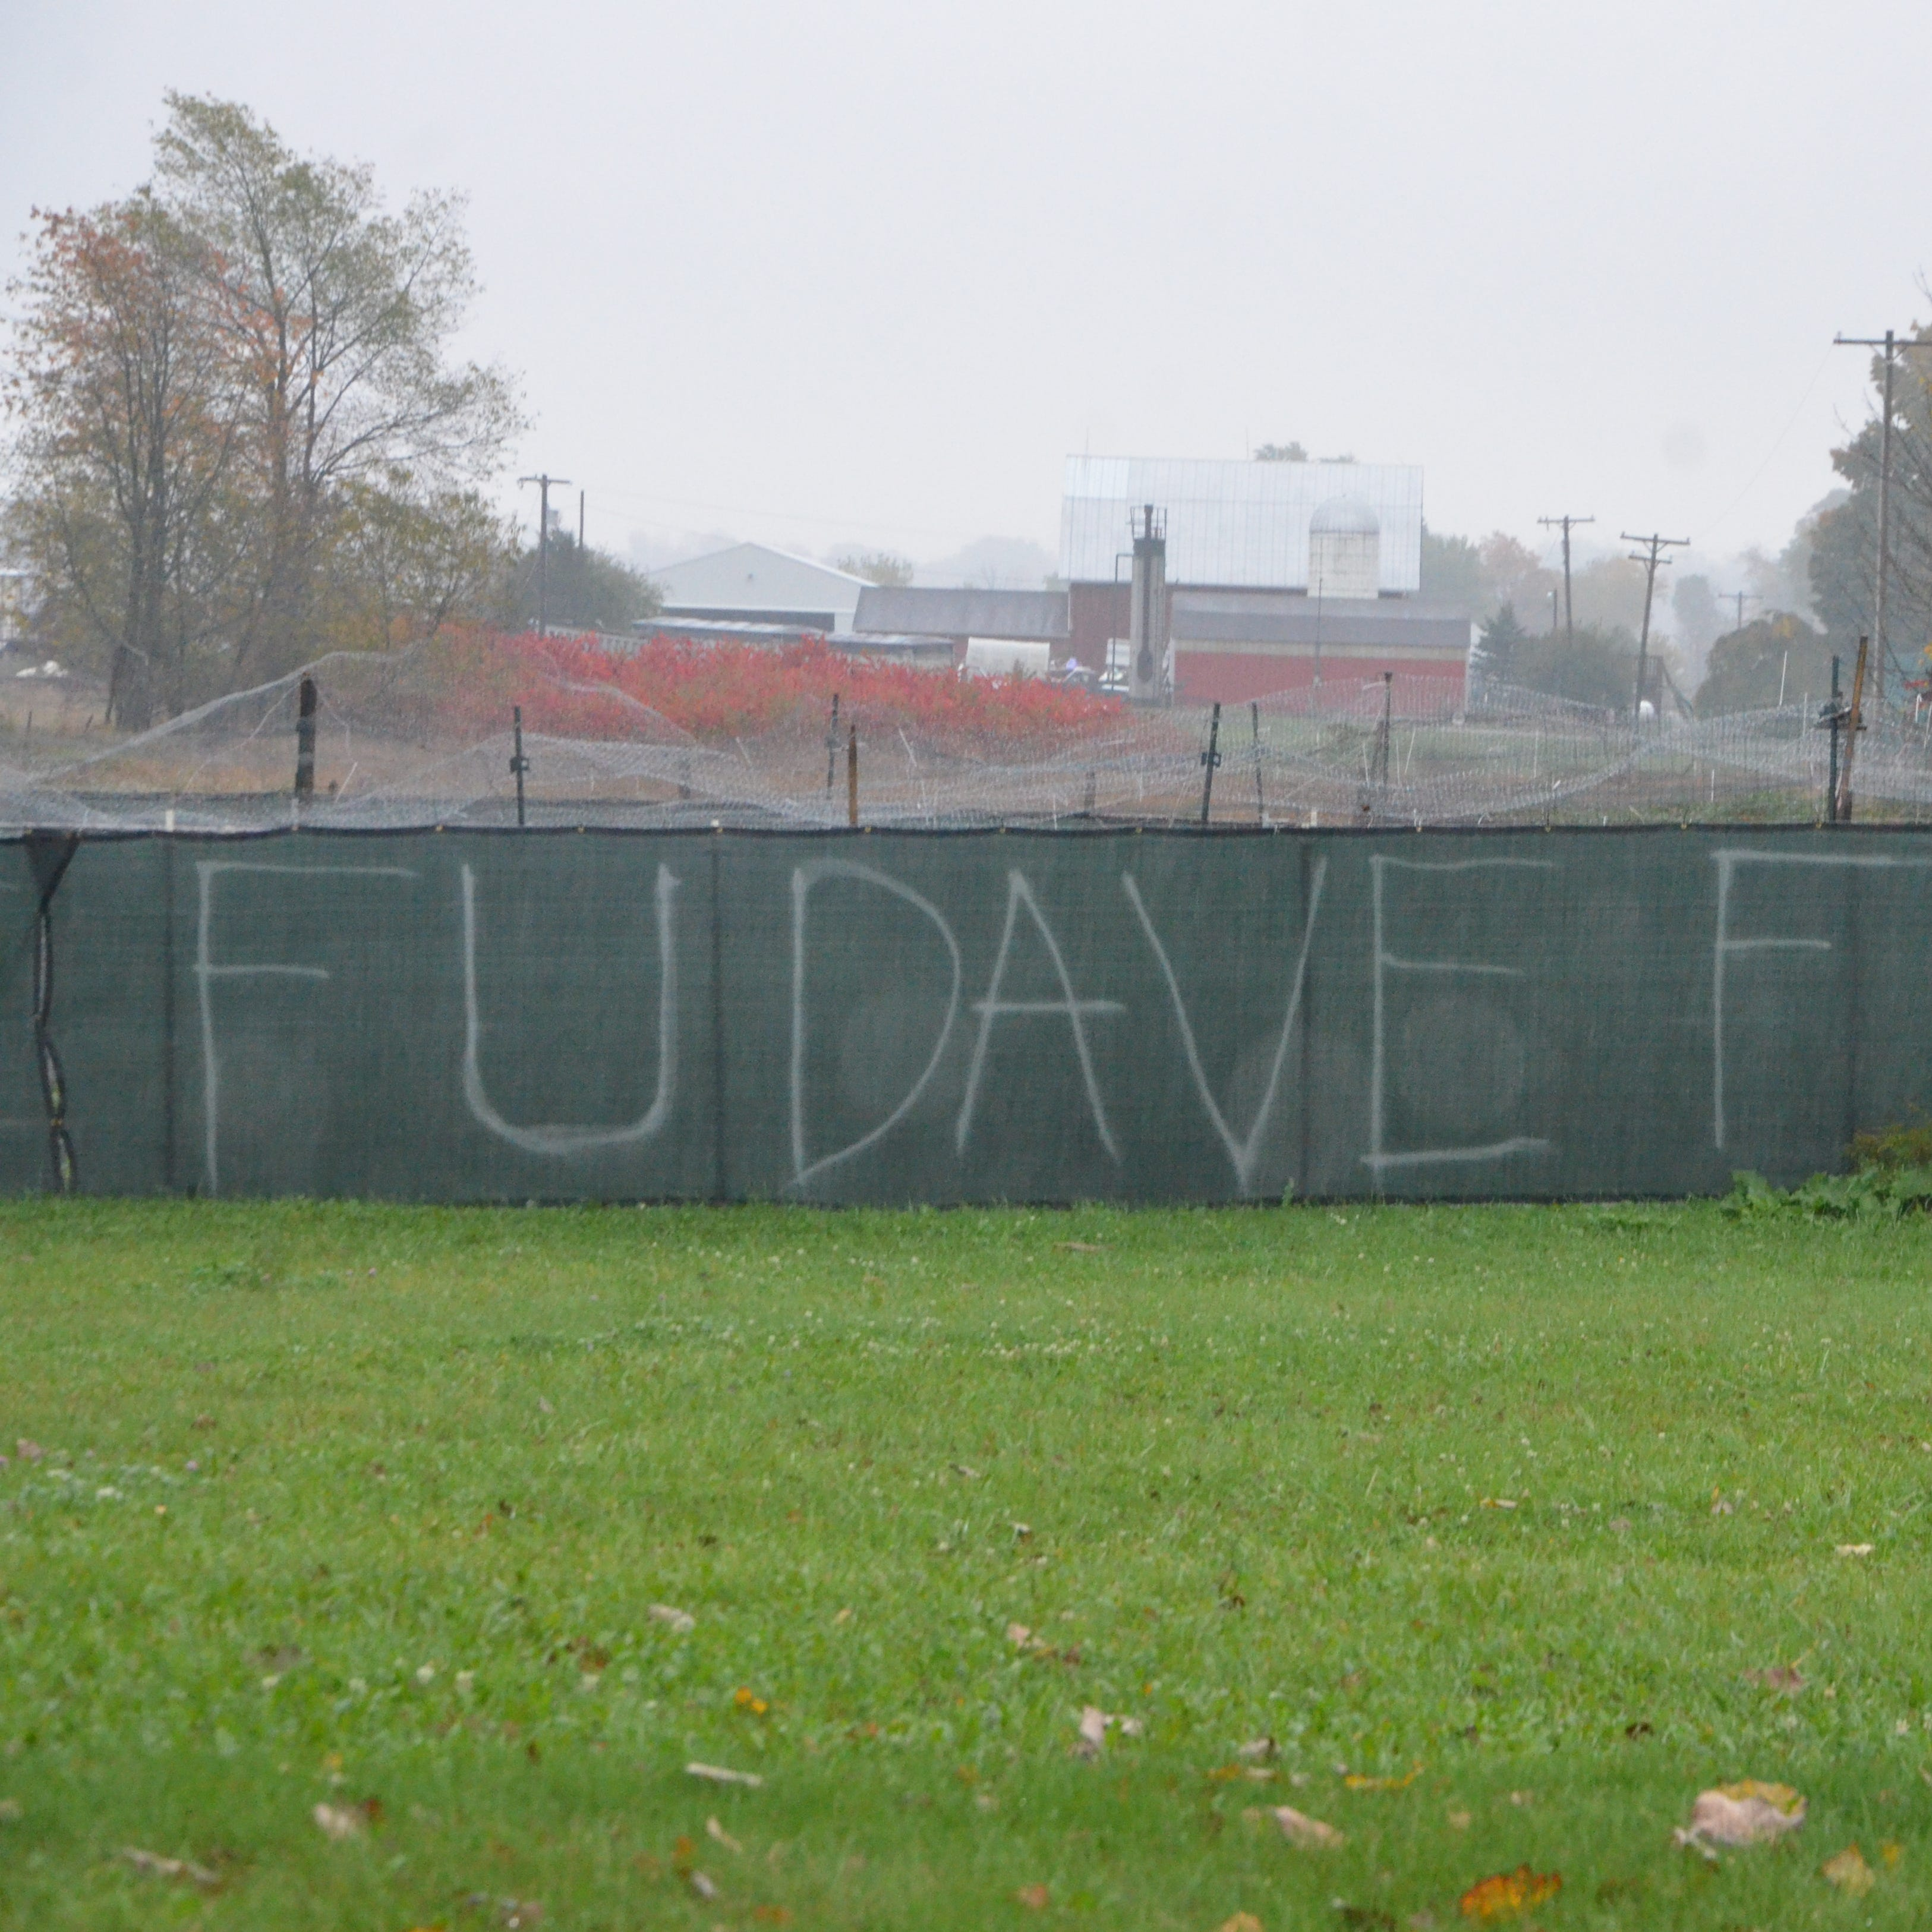 'F U Dave': Olivet neighbor dispute escalates to graffiti taunts